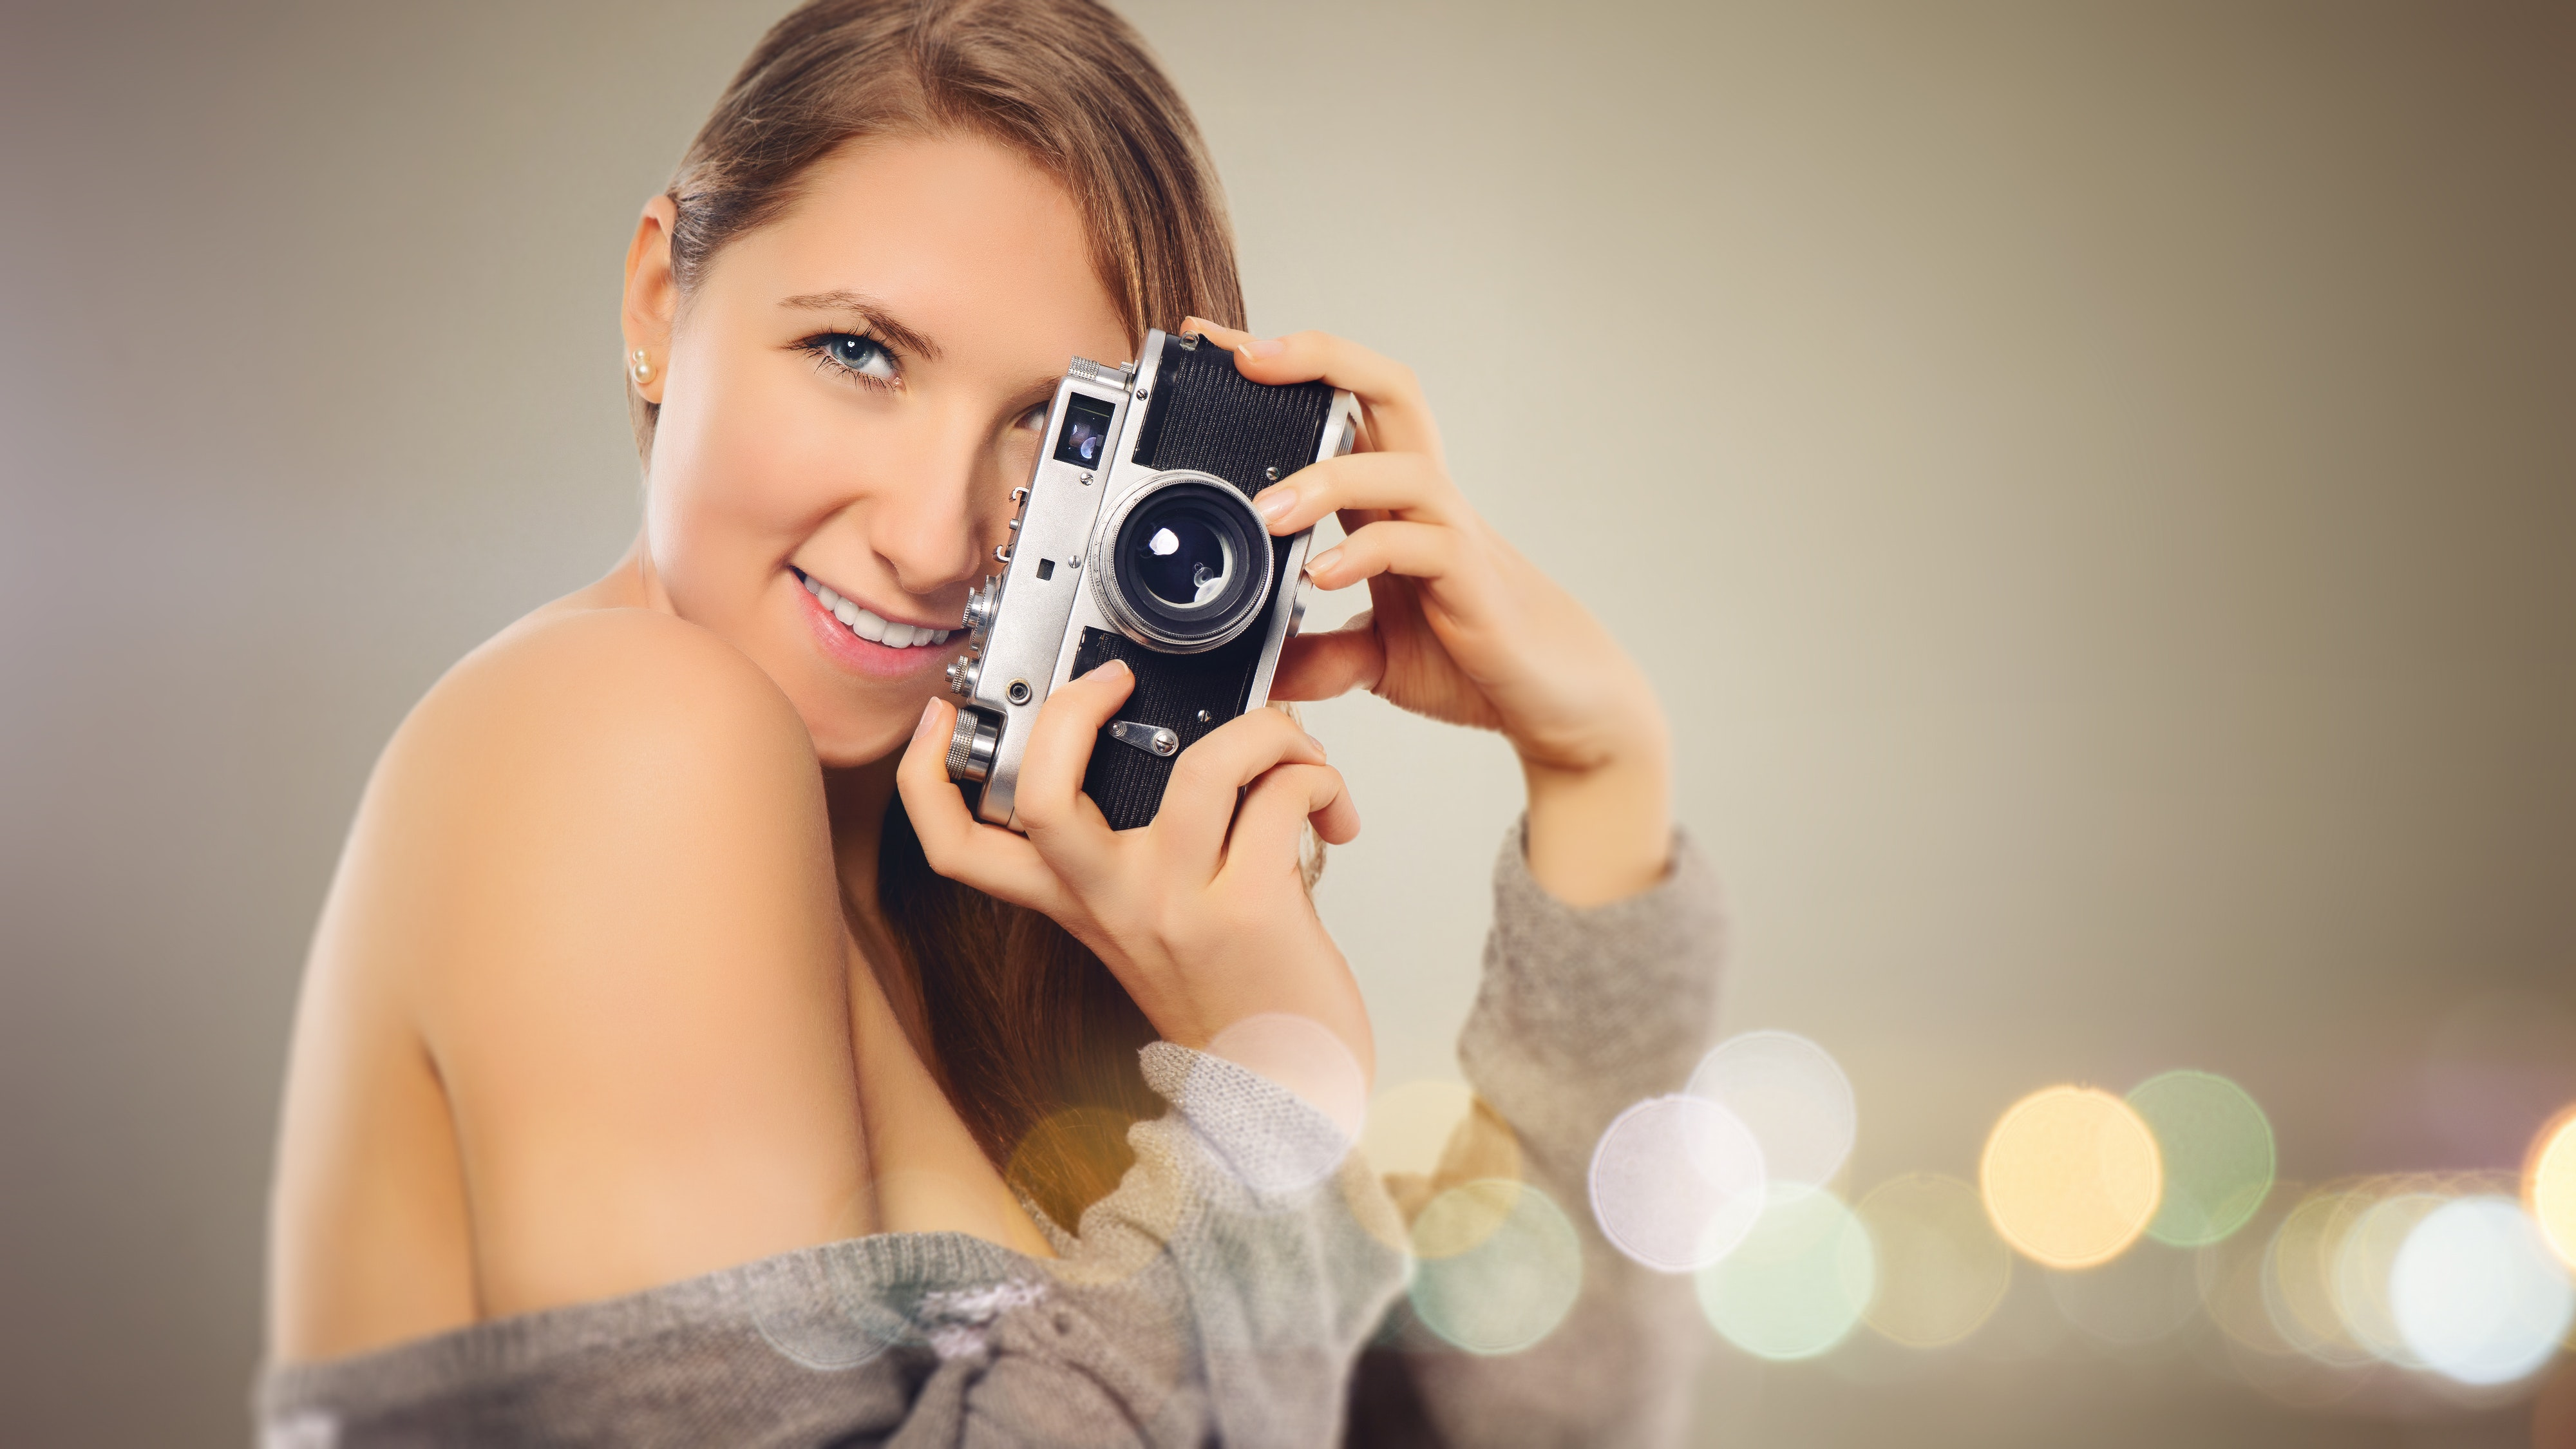 Step your game up with the best camera for amateur photographers